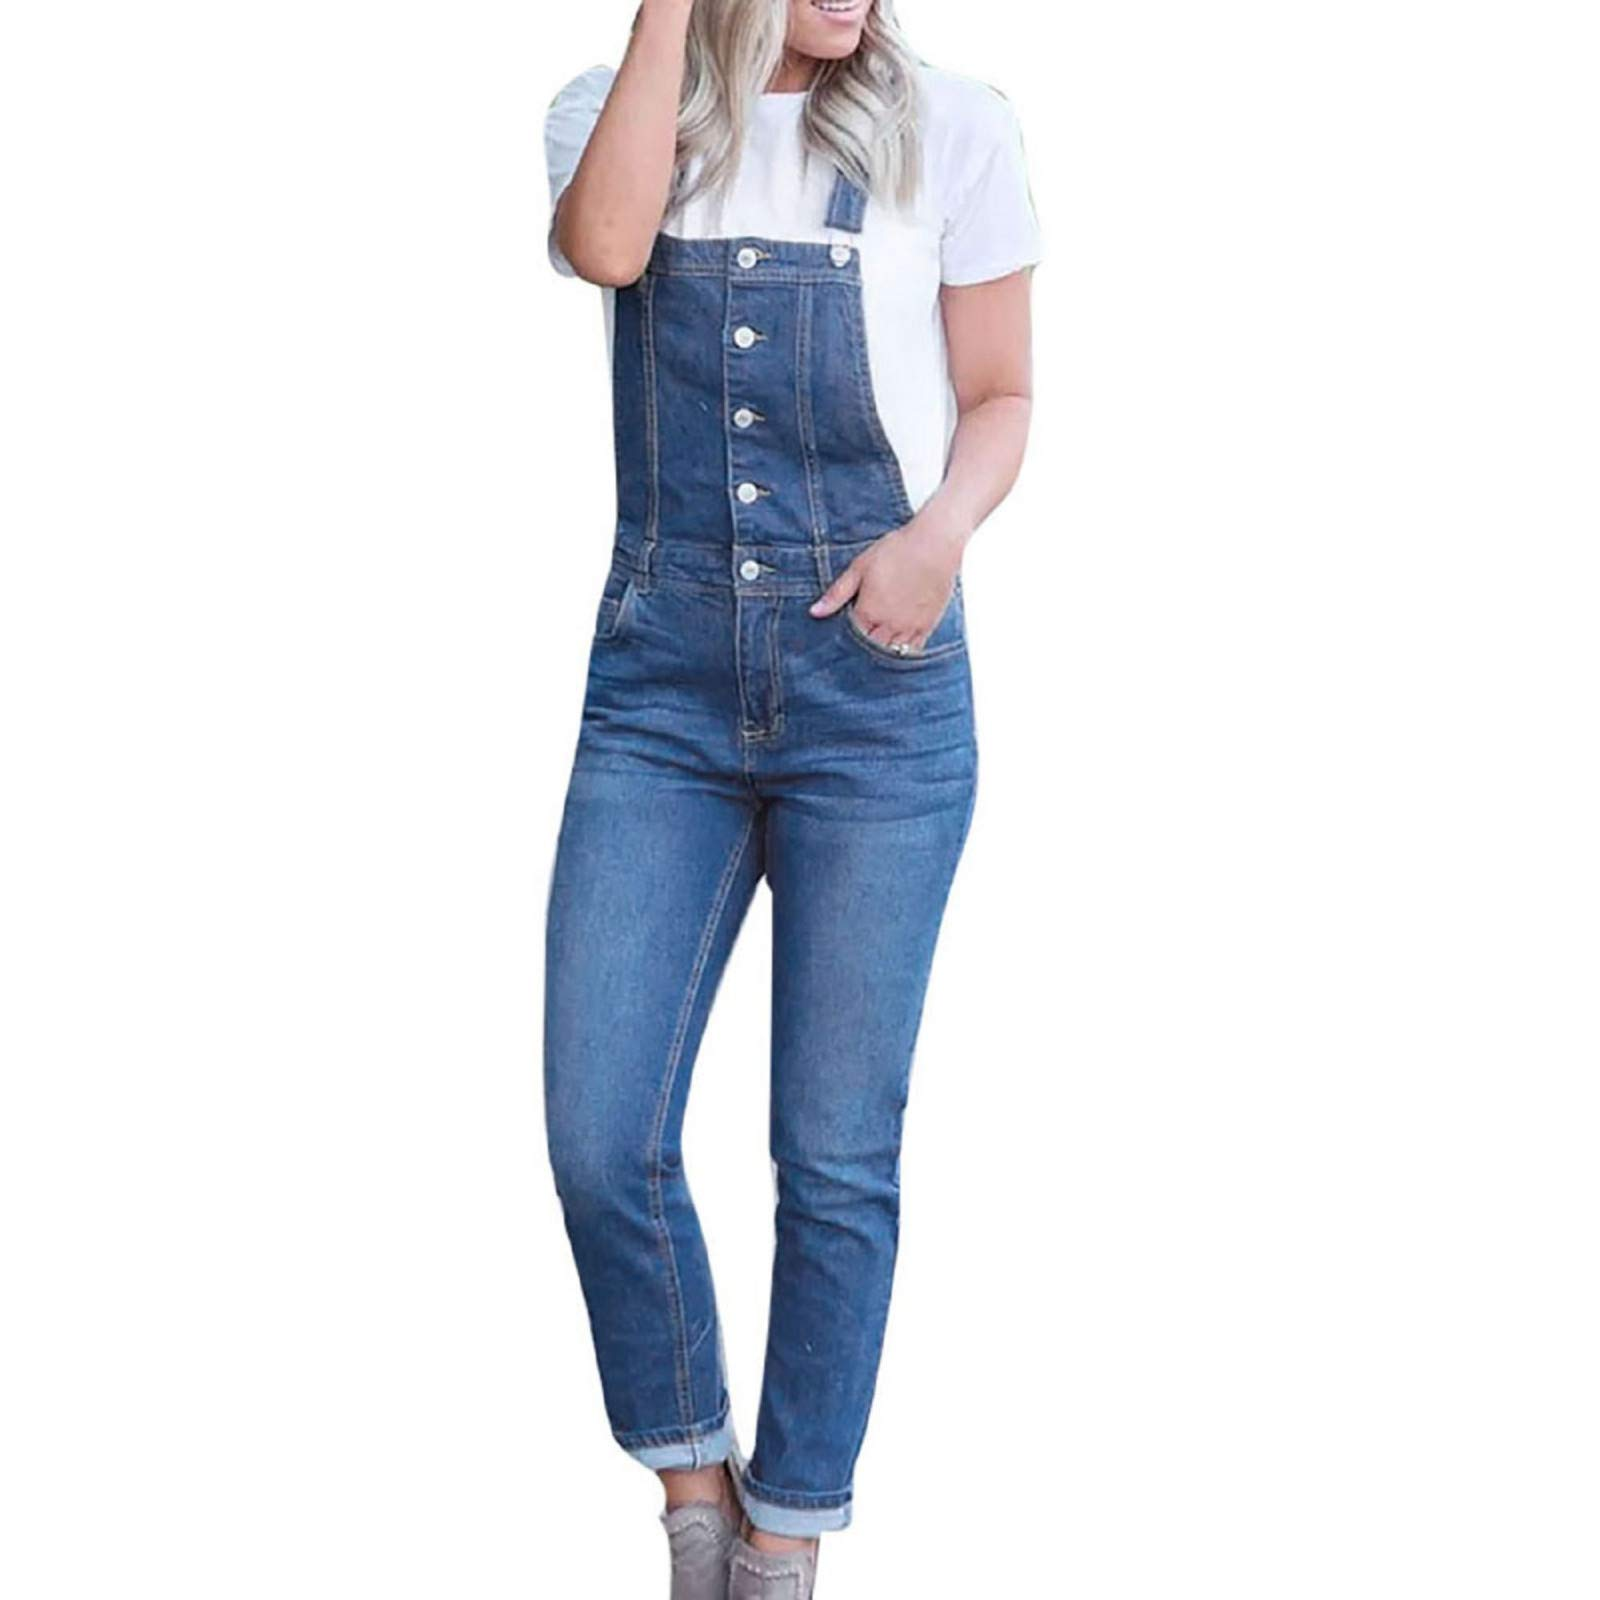 Zainafacai Overalls Jeans for Women Baggy Denim Button Overalls Jumpsuit Sleeveless Romper Harem Jeans Pants